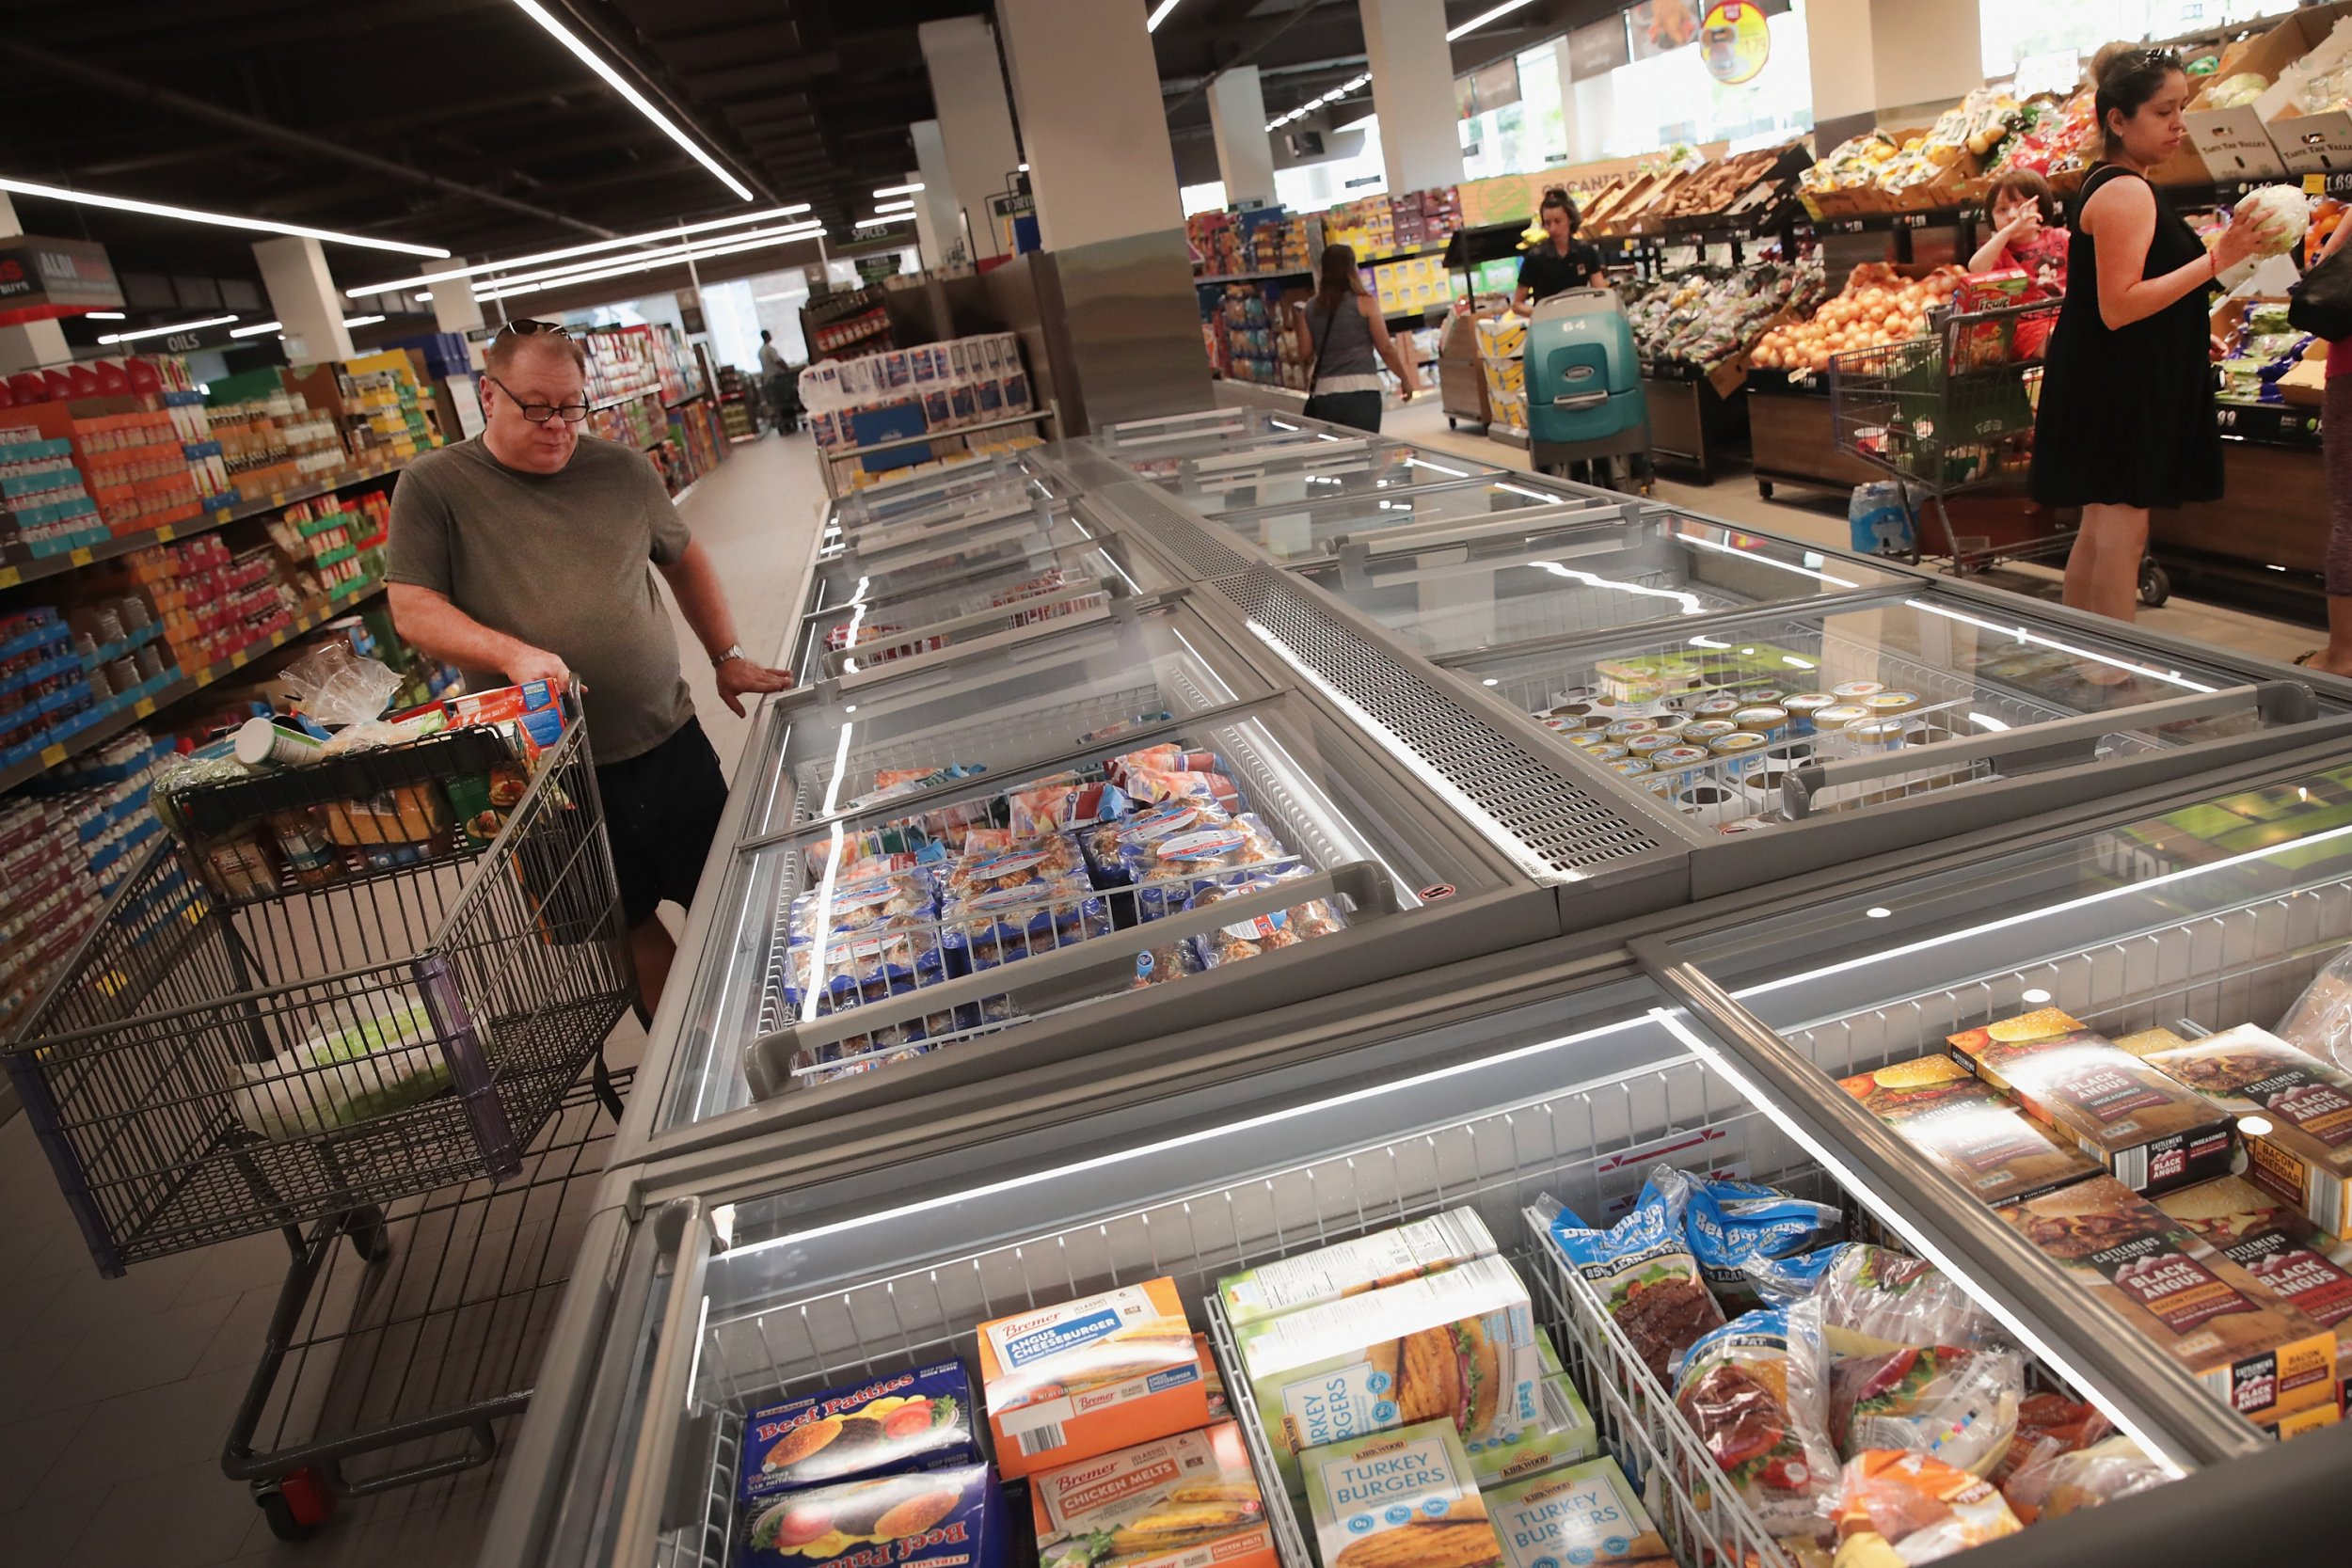 ISIS Supporters Call For Poisoning of Food in Grocery Stores